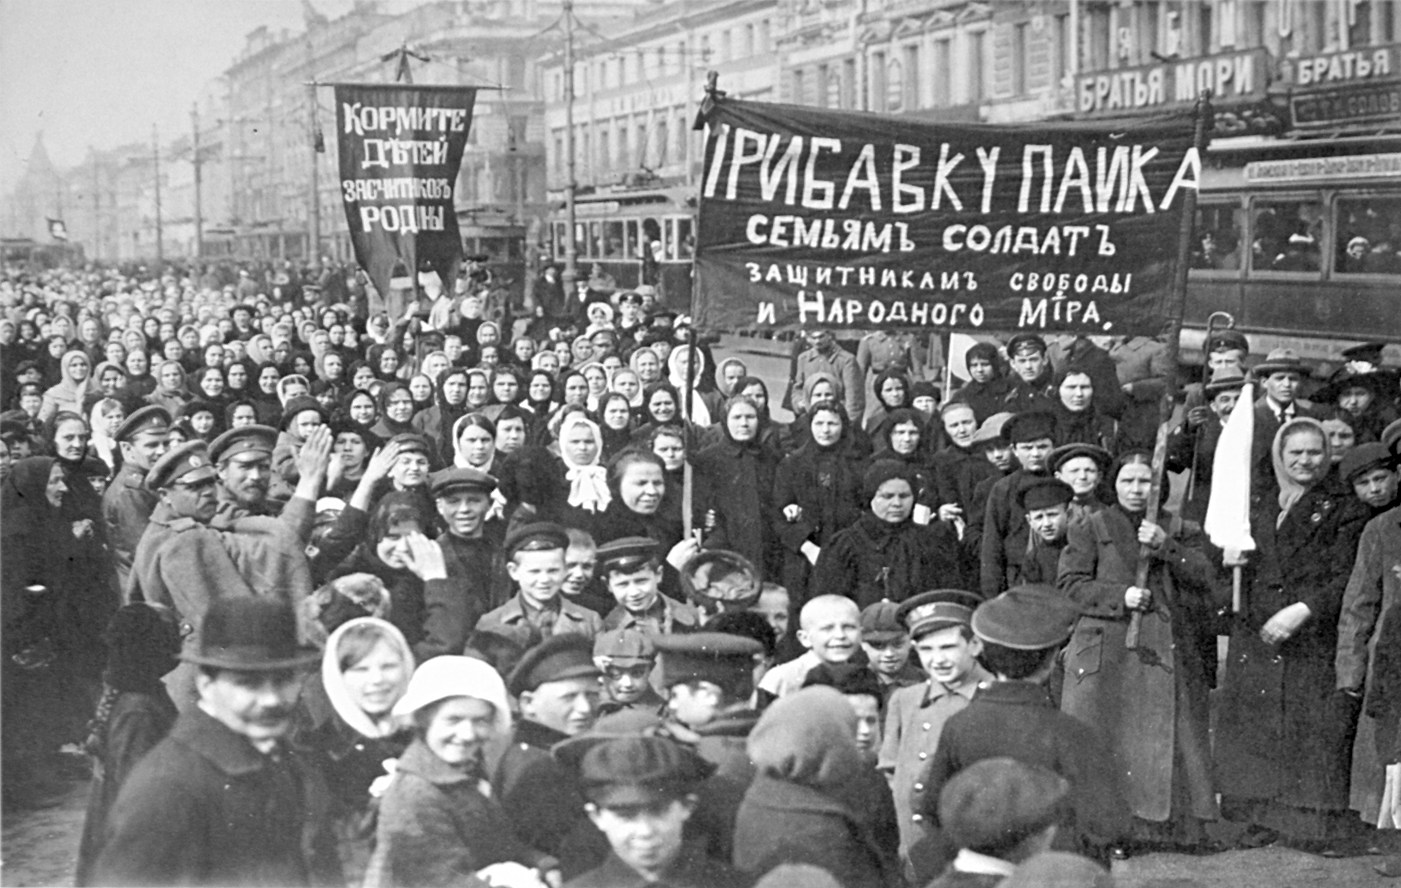 A protest in St. Petersburg in the early days of the February Revolution in 1917. (State museum of Russian political history/Public Domain)